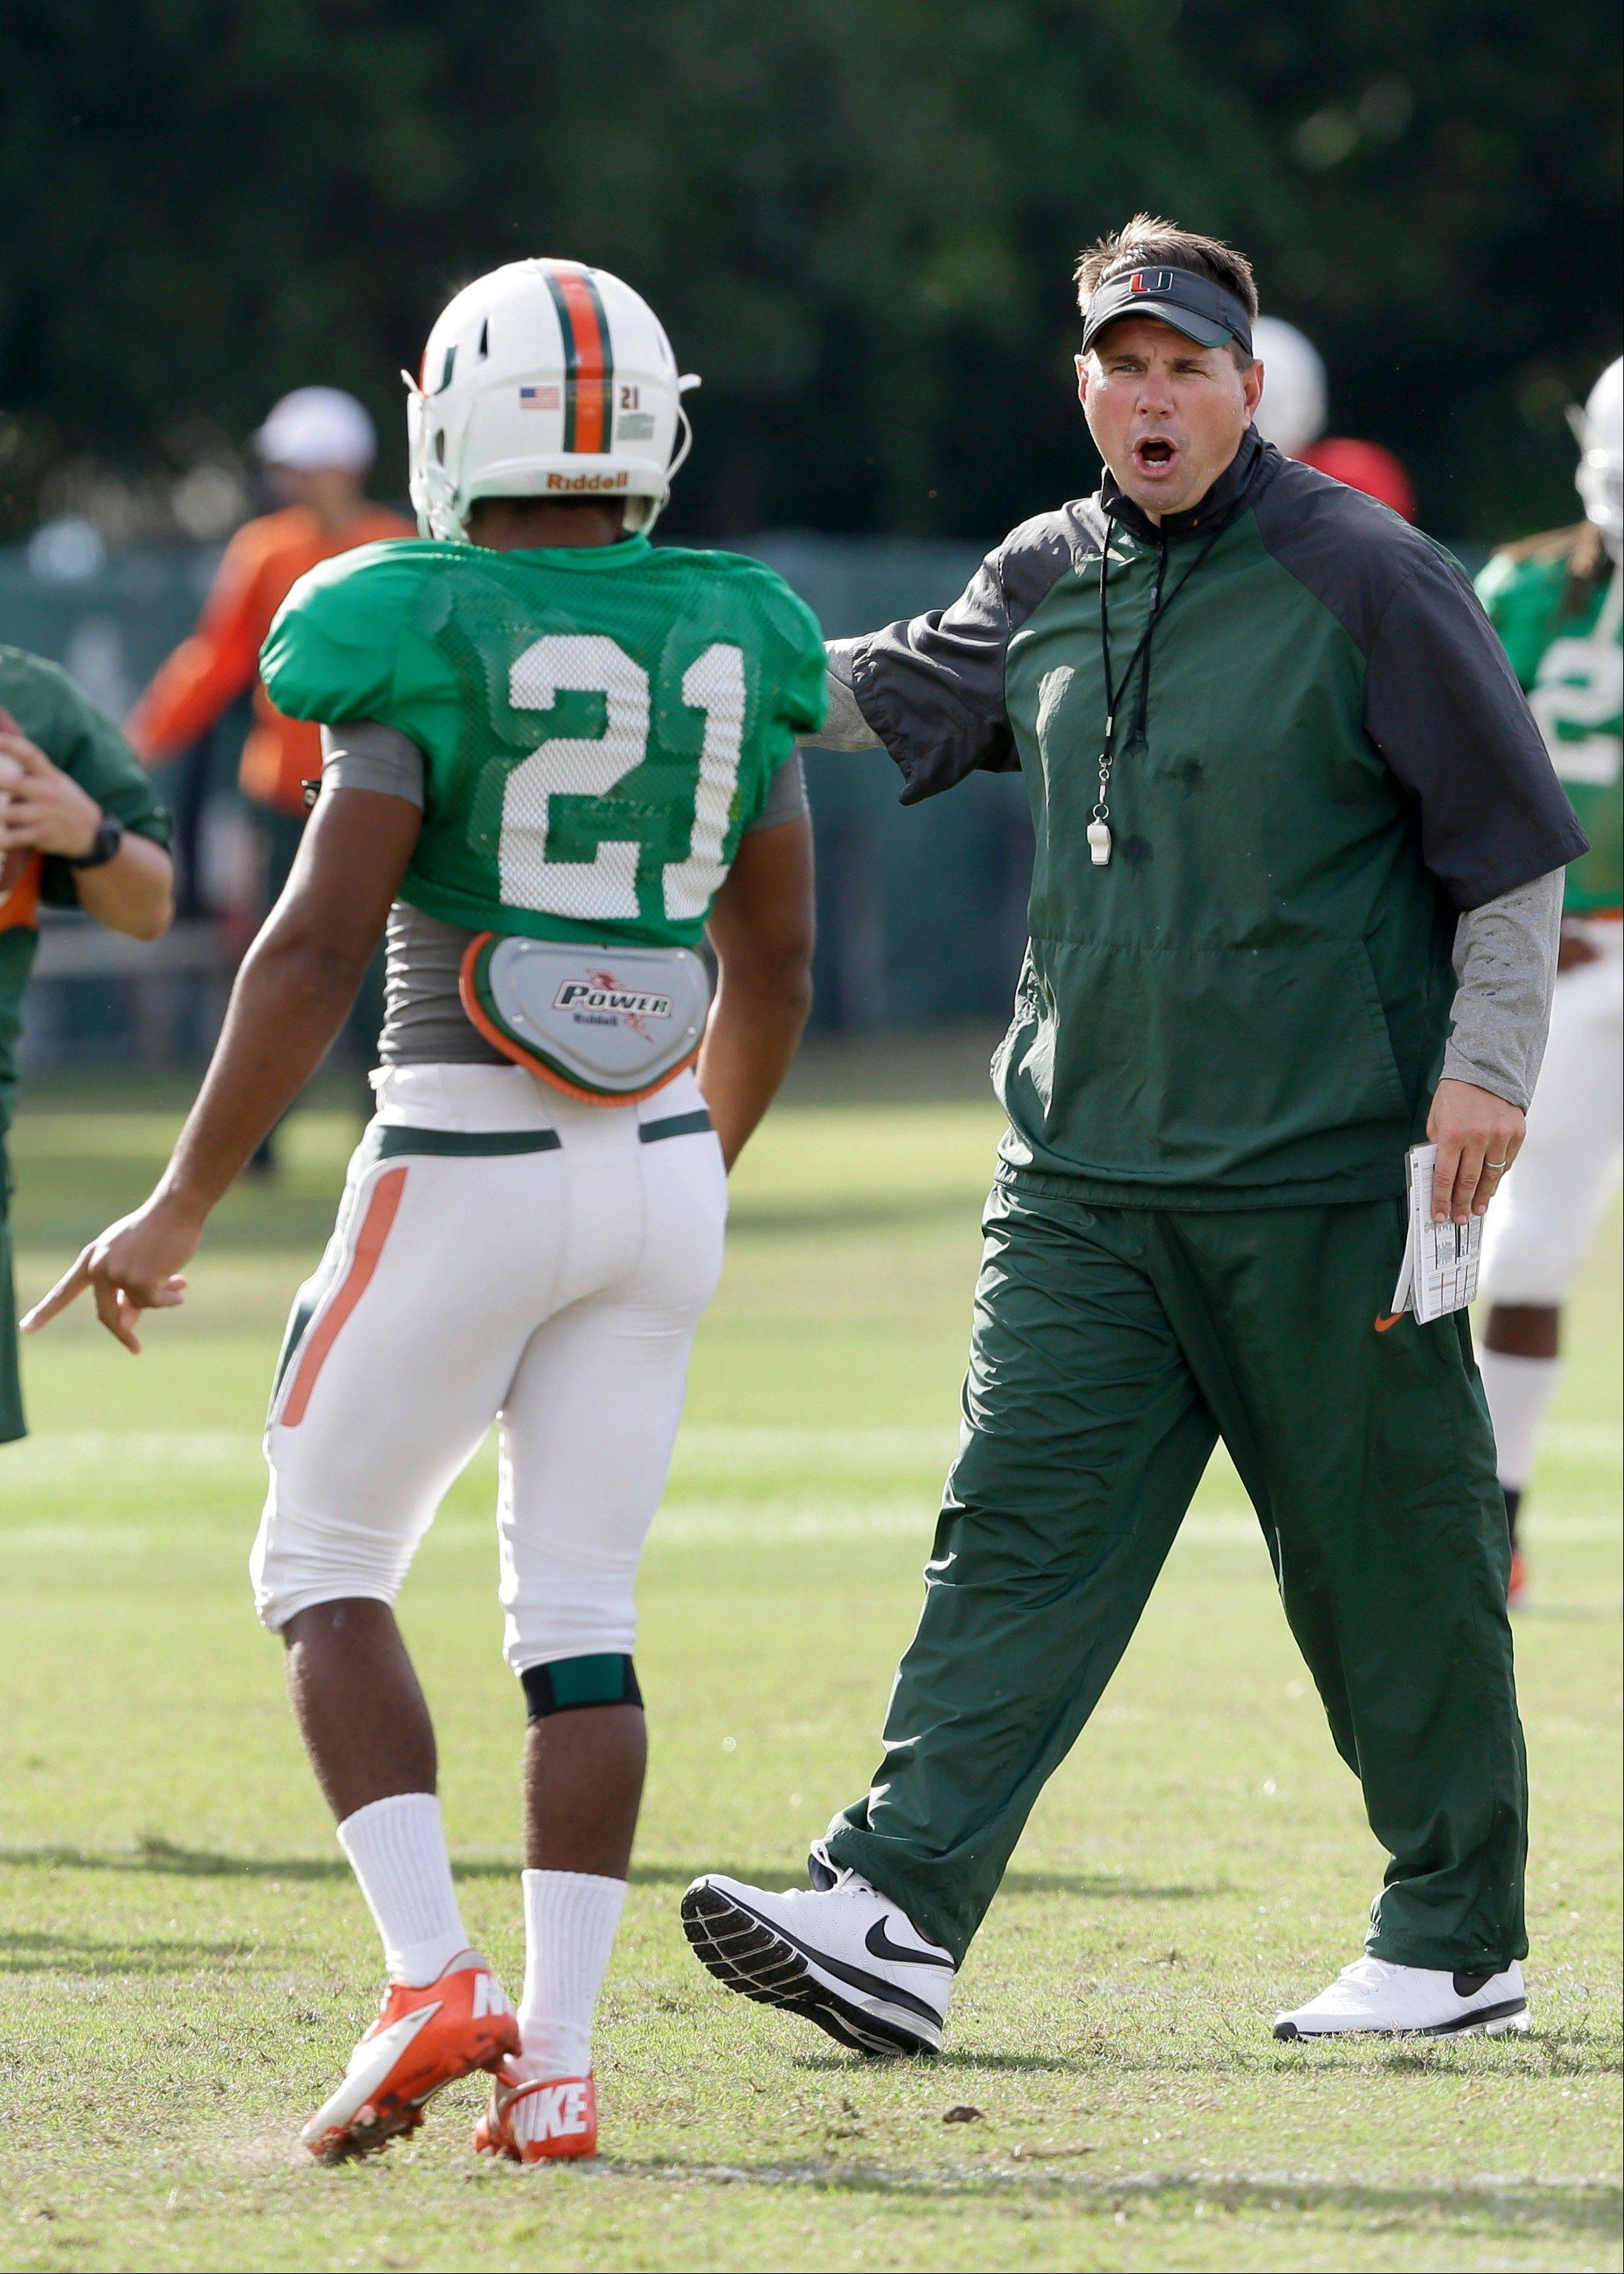 Miami head coach Al Golden, right, talks with defensive back Antonio Crawford during team practice Tuesday, in Coral Gables, Fla. Miami's football team will lose nine scholarships and the men's basketball team will lose three, as part of the penalties the school was handed Tuesday by the NCAA as the Nevin Shapiro scandal presumably drew to a close.